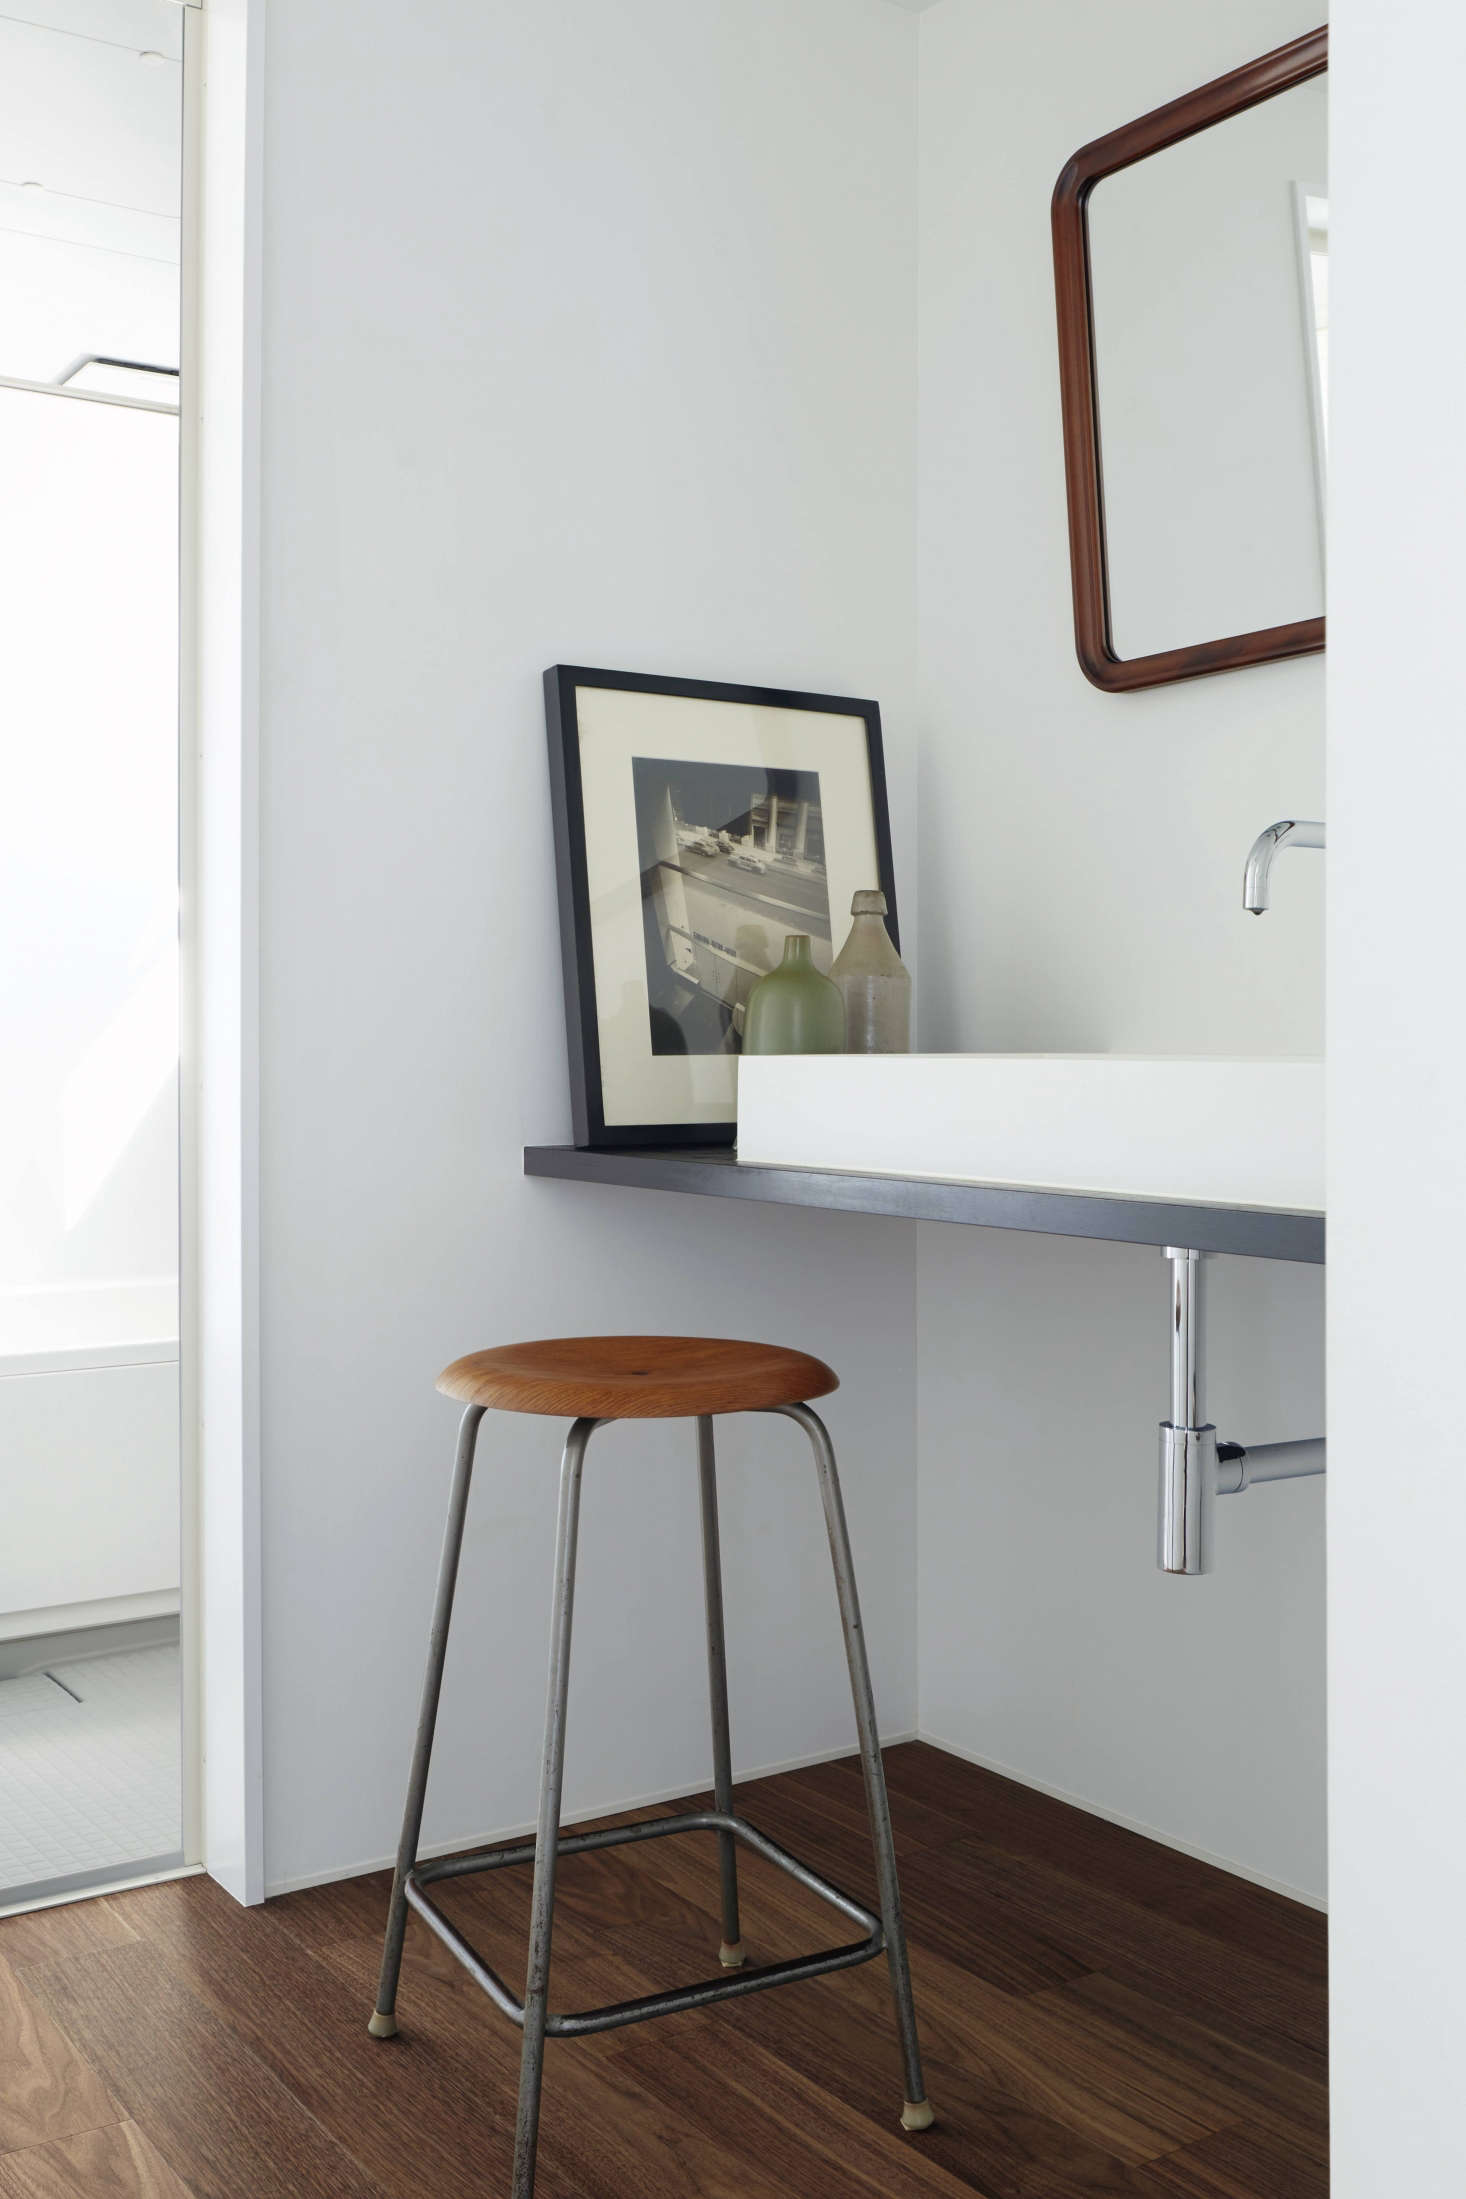 In the family bath, a stained Douglas fir shelf supports a simple sink and serves as a place to prop art. The designers used an affordable off-the-shelf Japanese unit system in the inner bathroom.